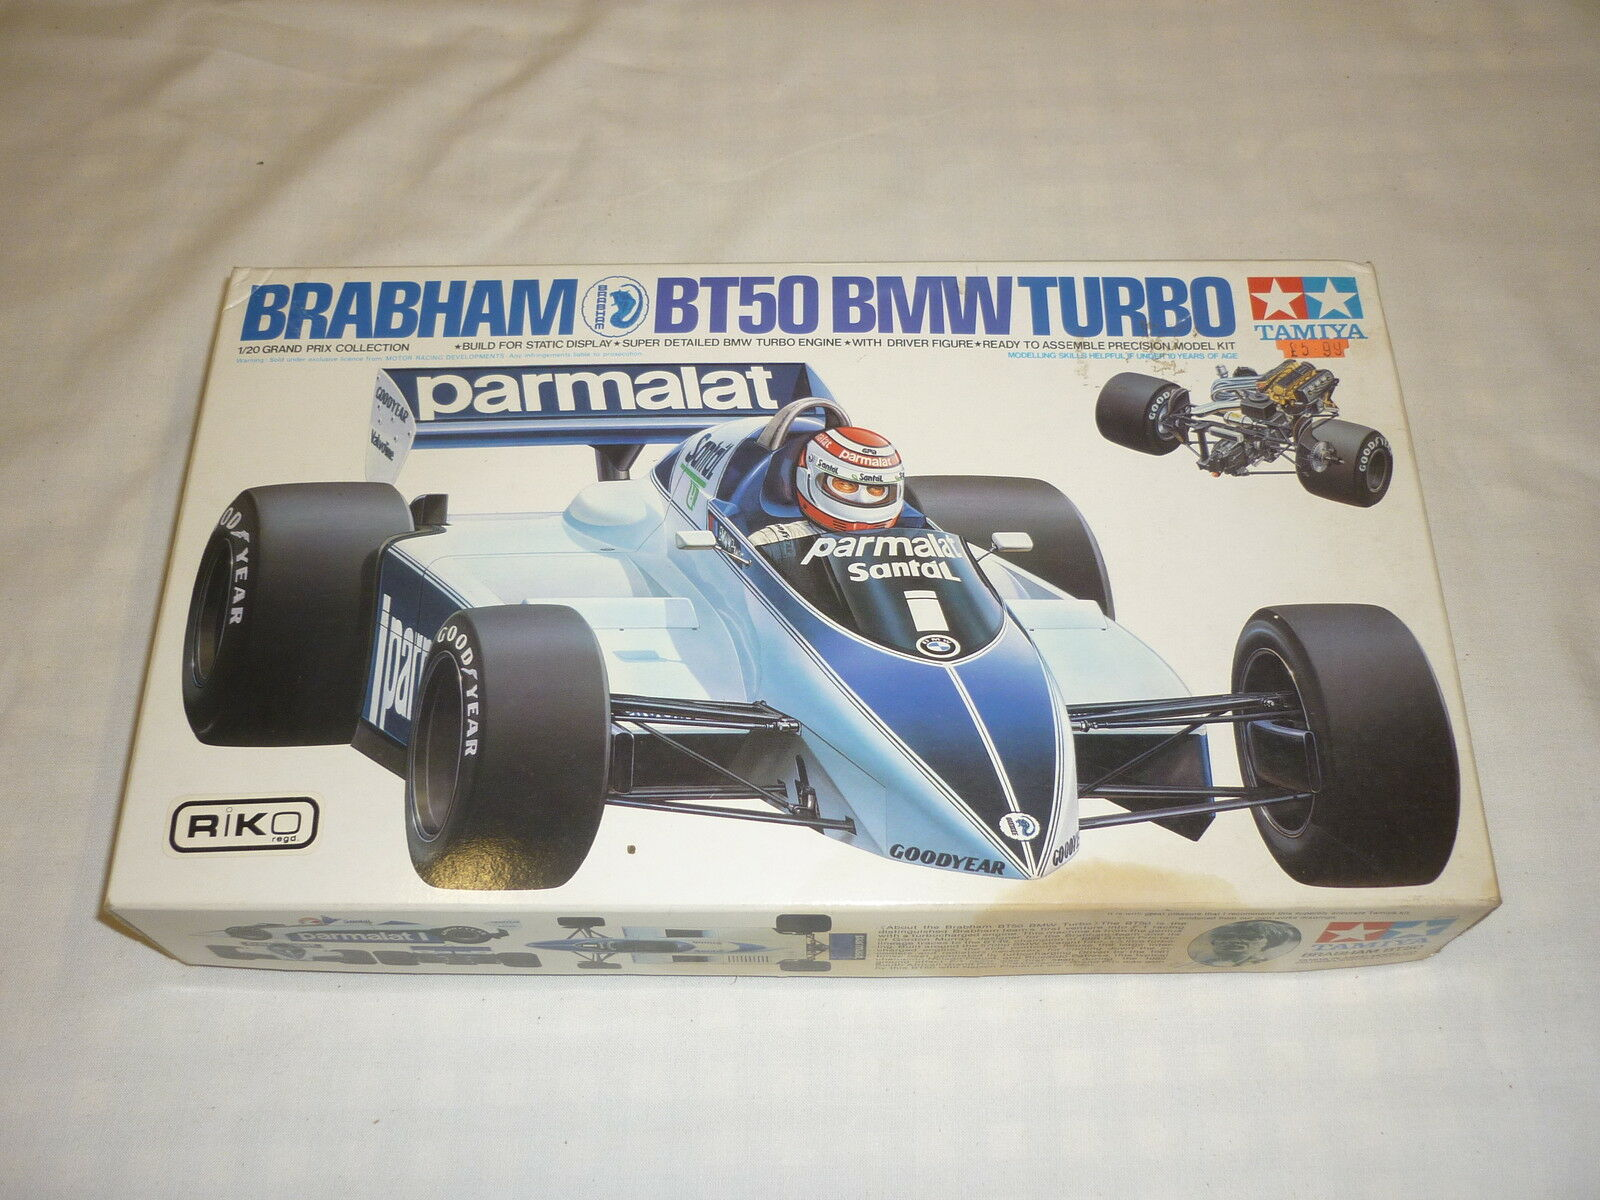 TAMIYA un made plastic kit of a Brabham BT50 BMW TURBO, boxed